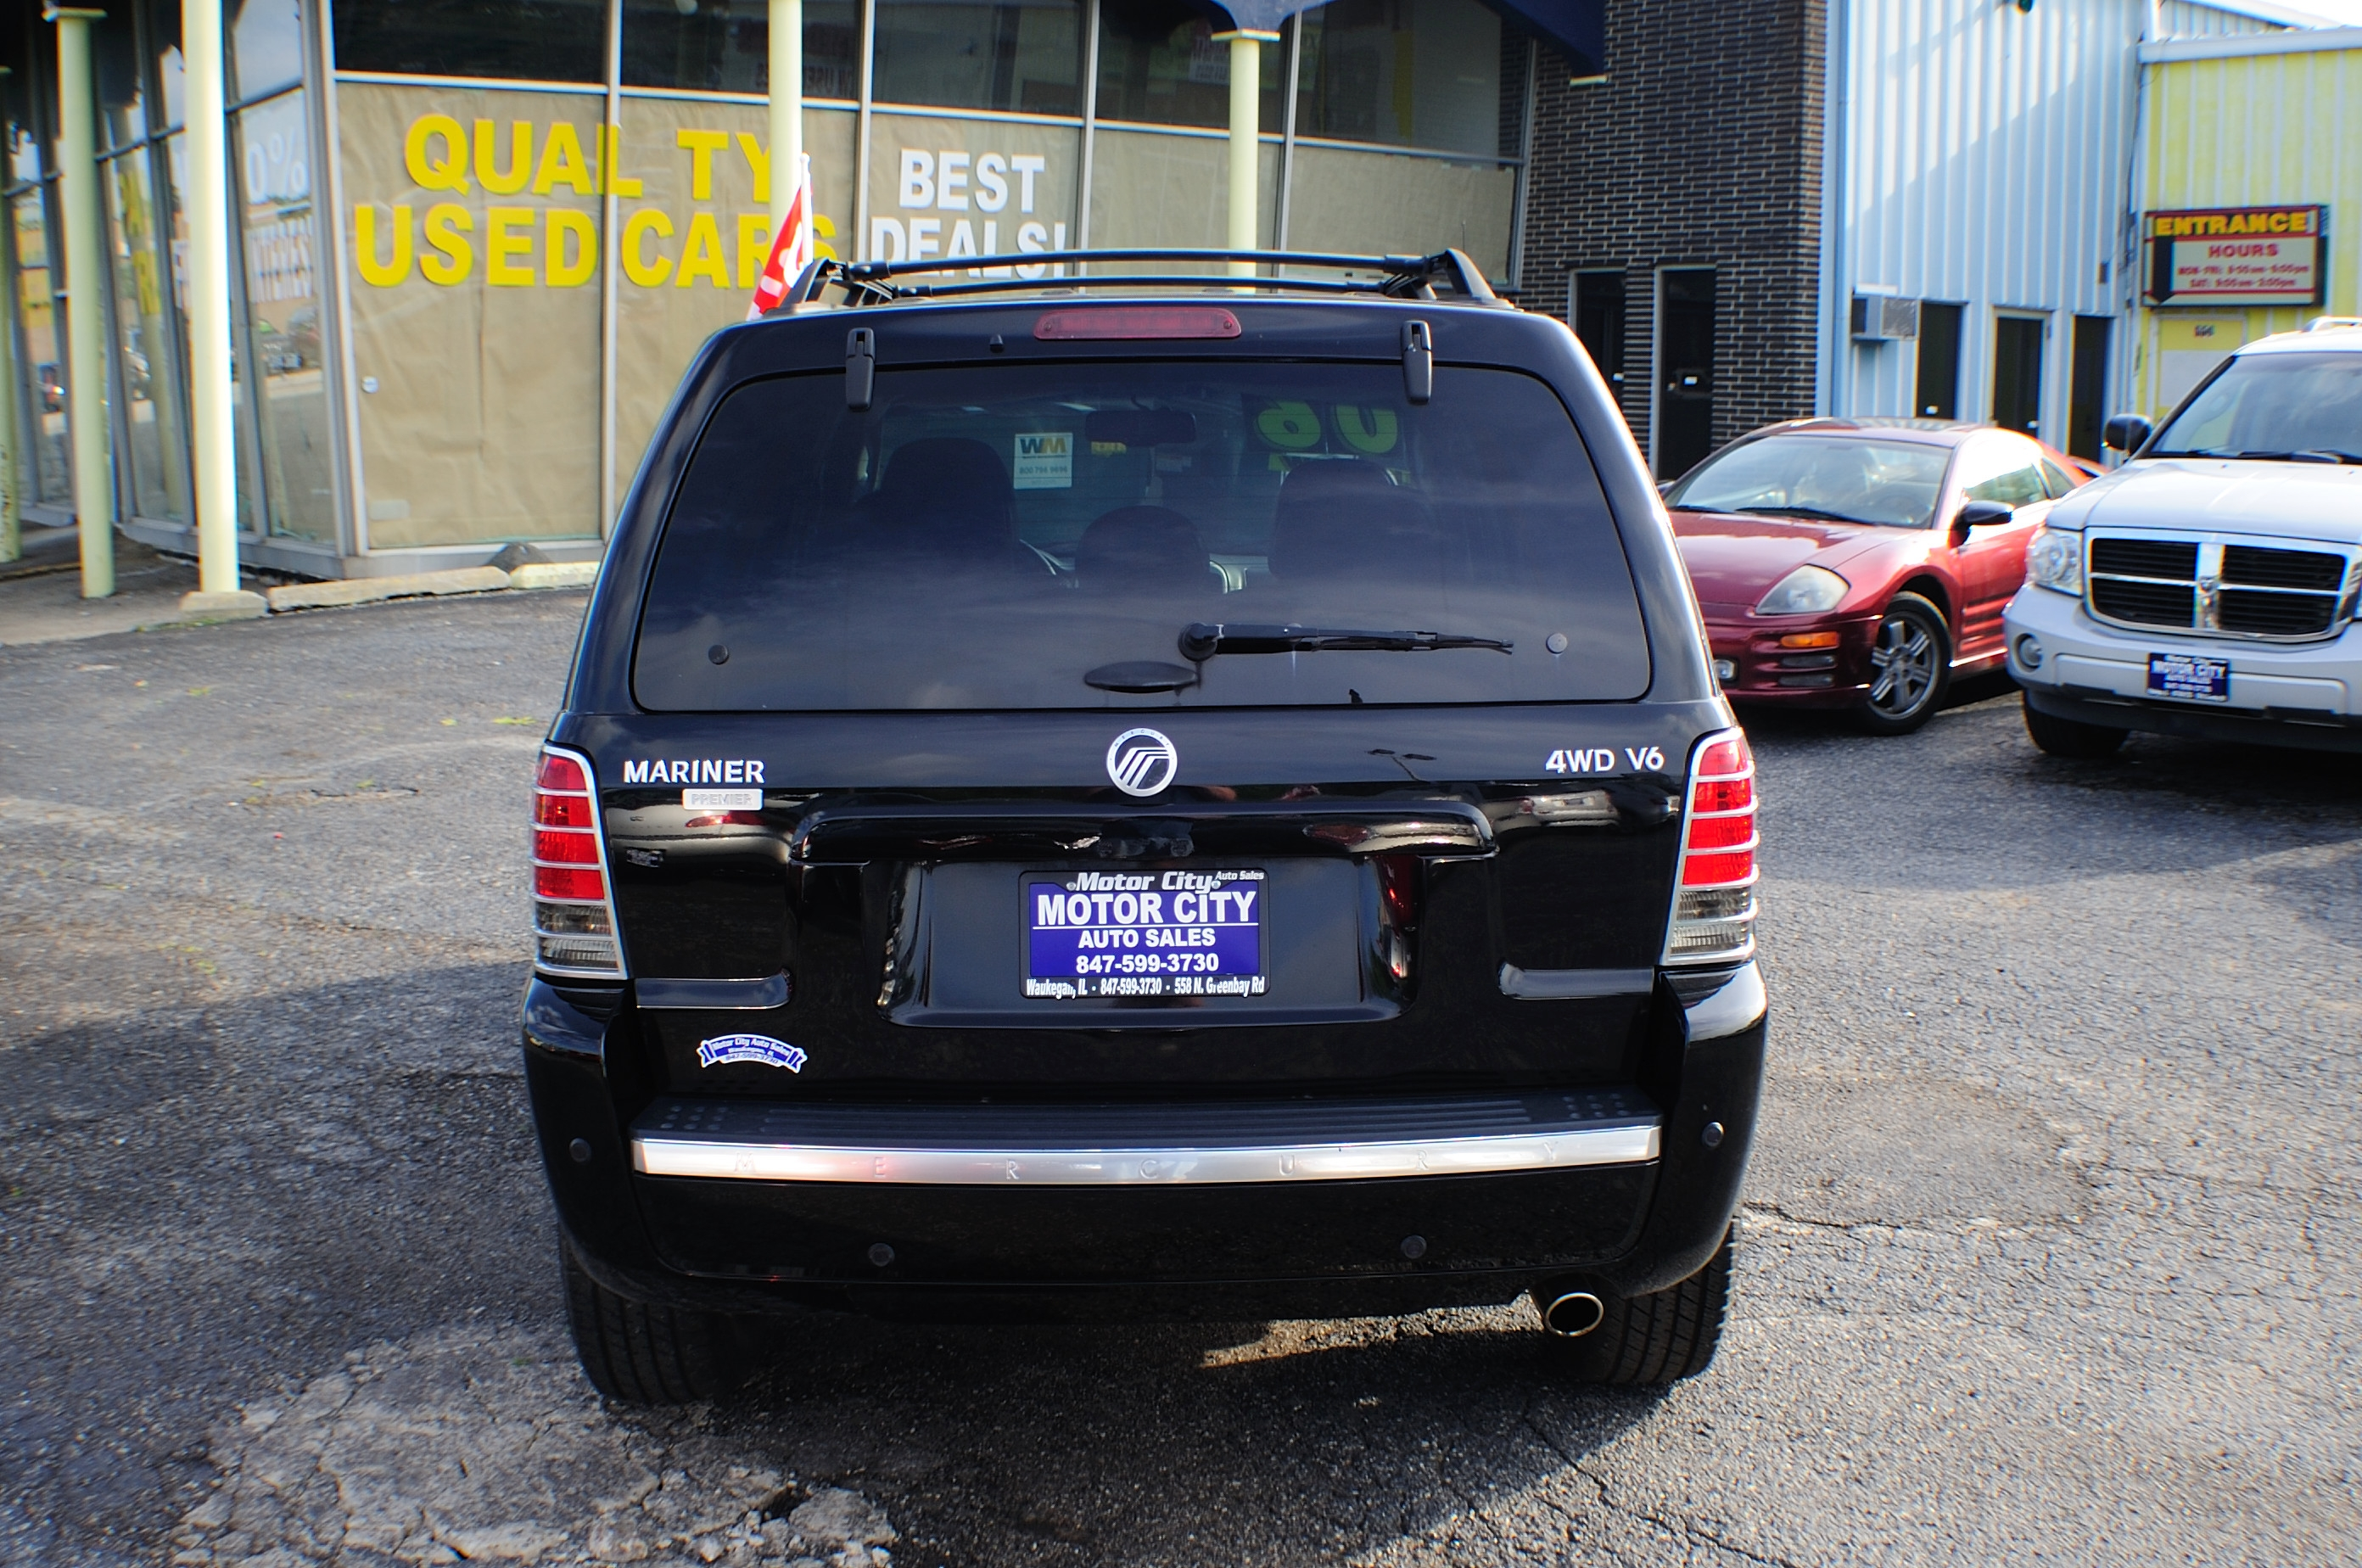 2006 Mercury Mariner Black AWD V6 Used SUV Wagon Sale Waukegan Kenosha